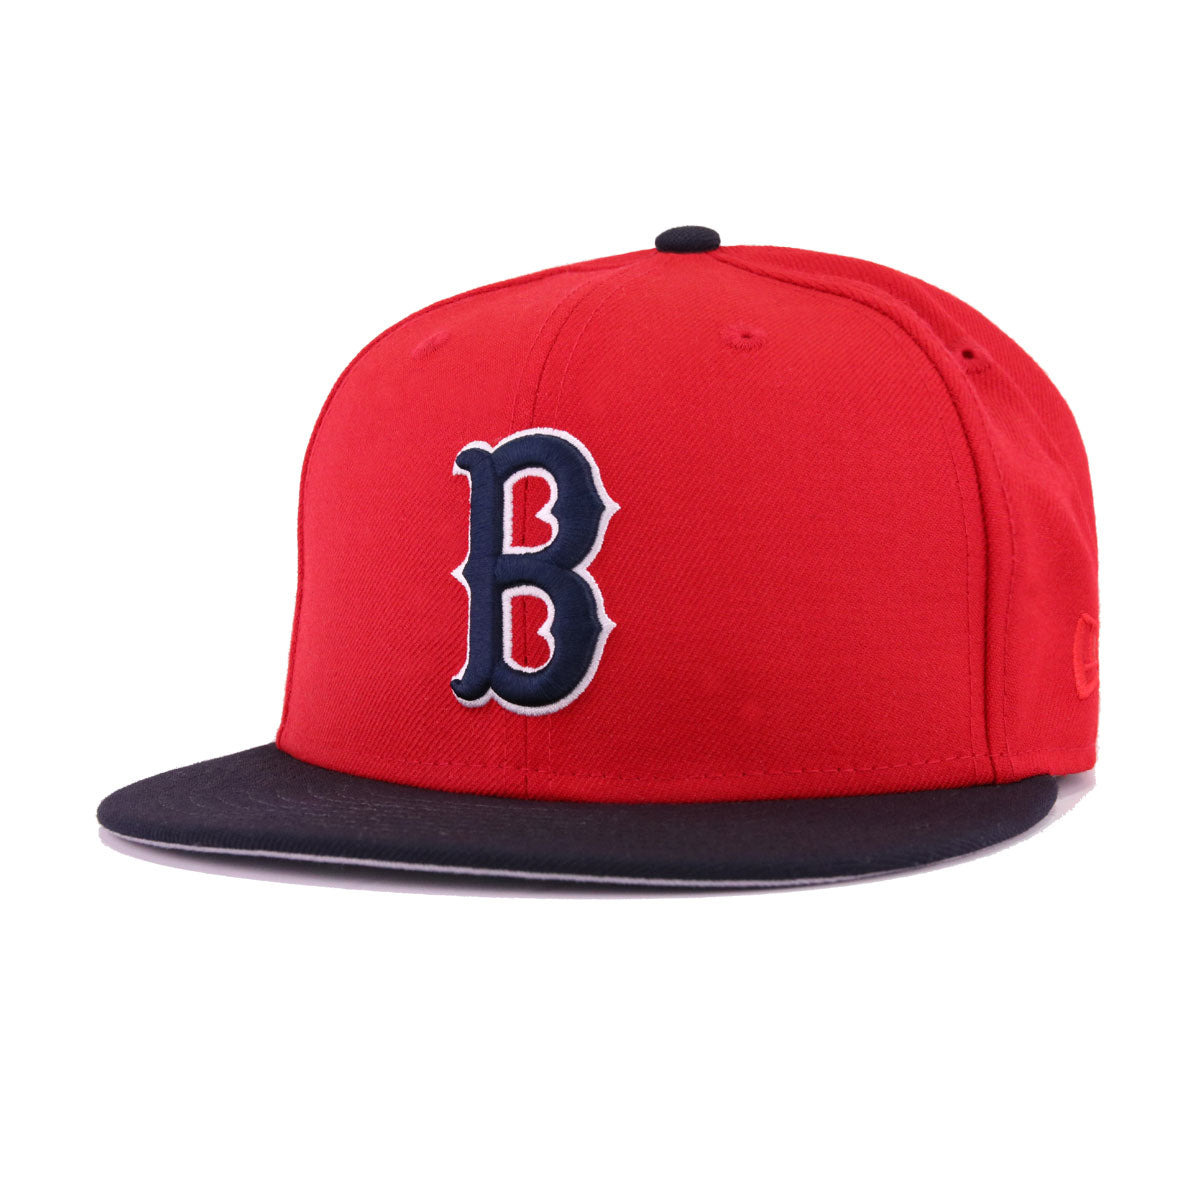 Boston Red Sox Scarlet Navy Cooperstown 1961 All Star Game New Era 59Fifty Fitted